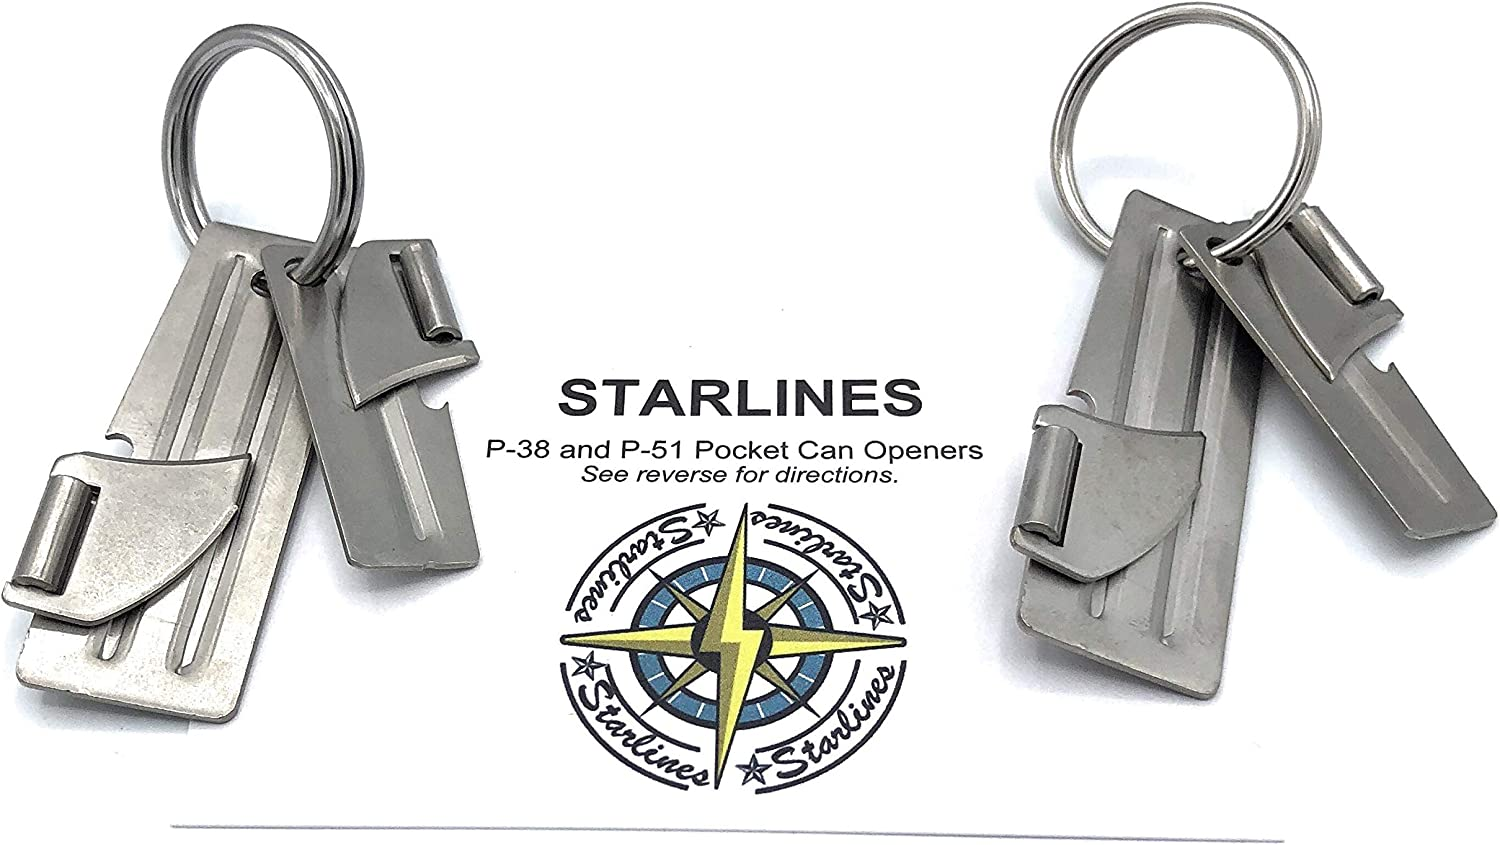 Two Sets of P-38 and P-51 Military Can Openers, Made in USA, with Stainless Steel Key Rings (6-piece bundle)